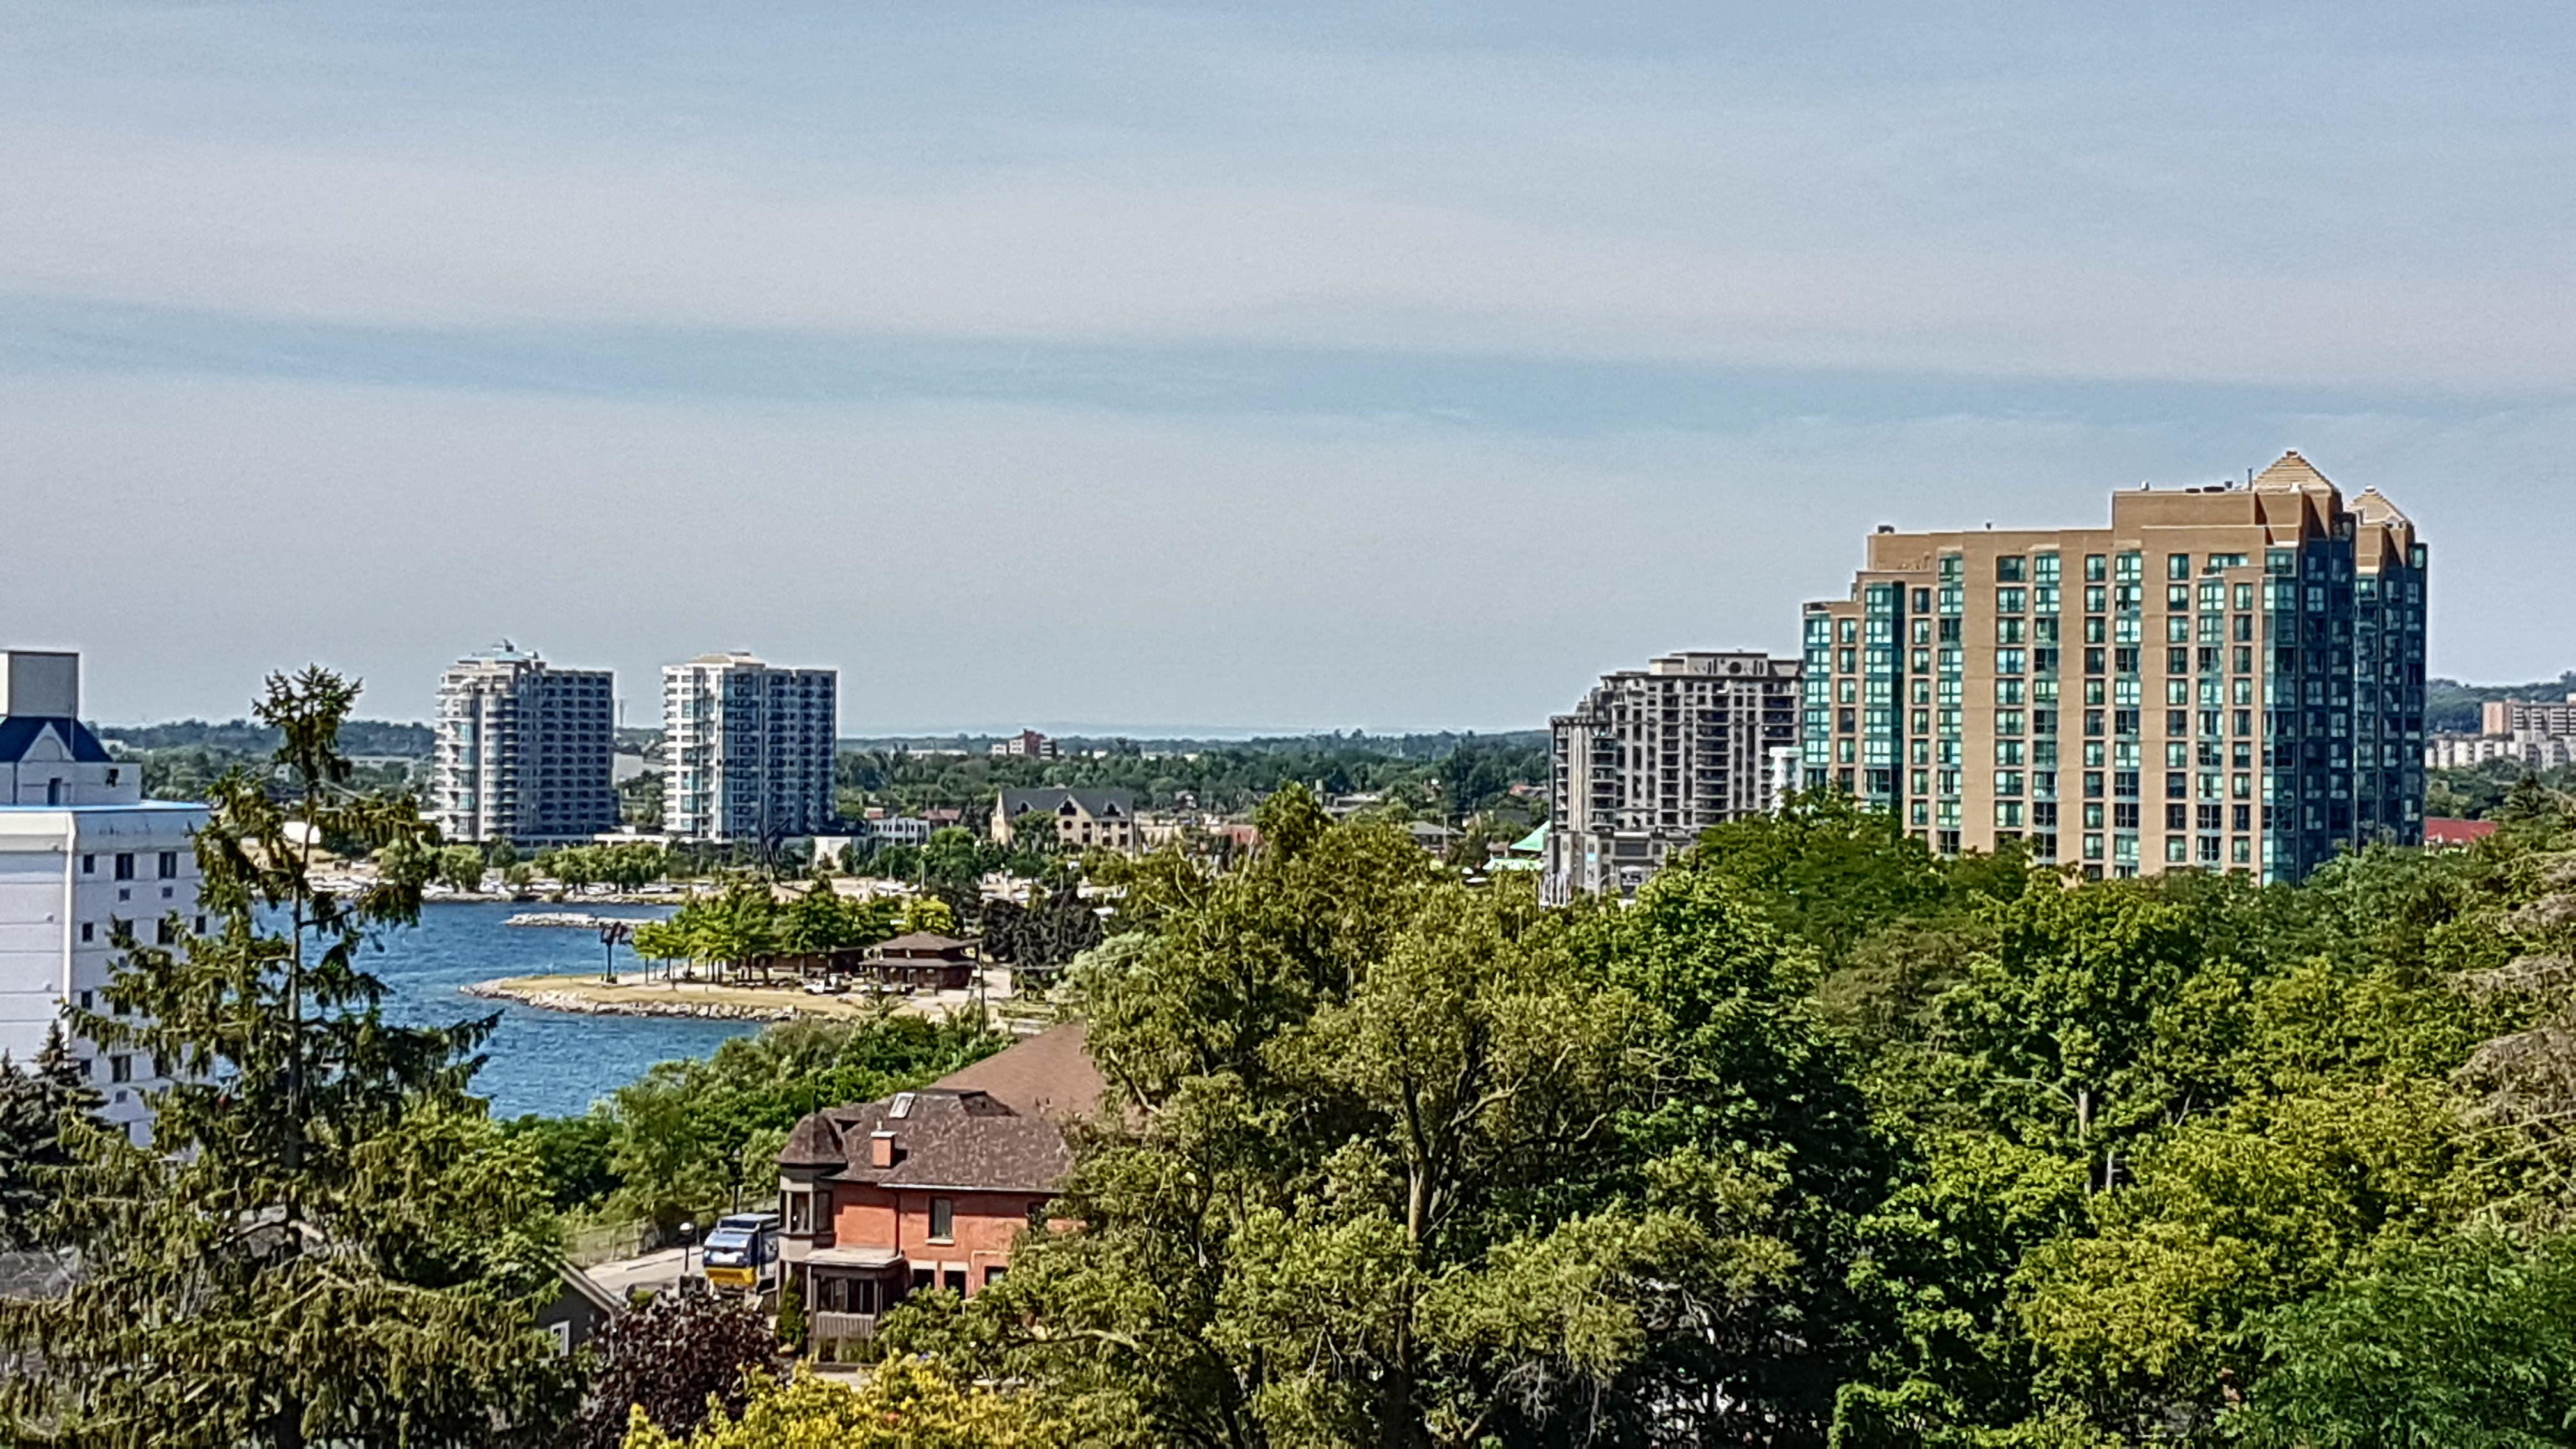 First Quarter (Q1) 2021 Summary - Barrie Waterfront & Downtown